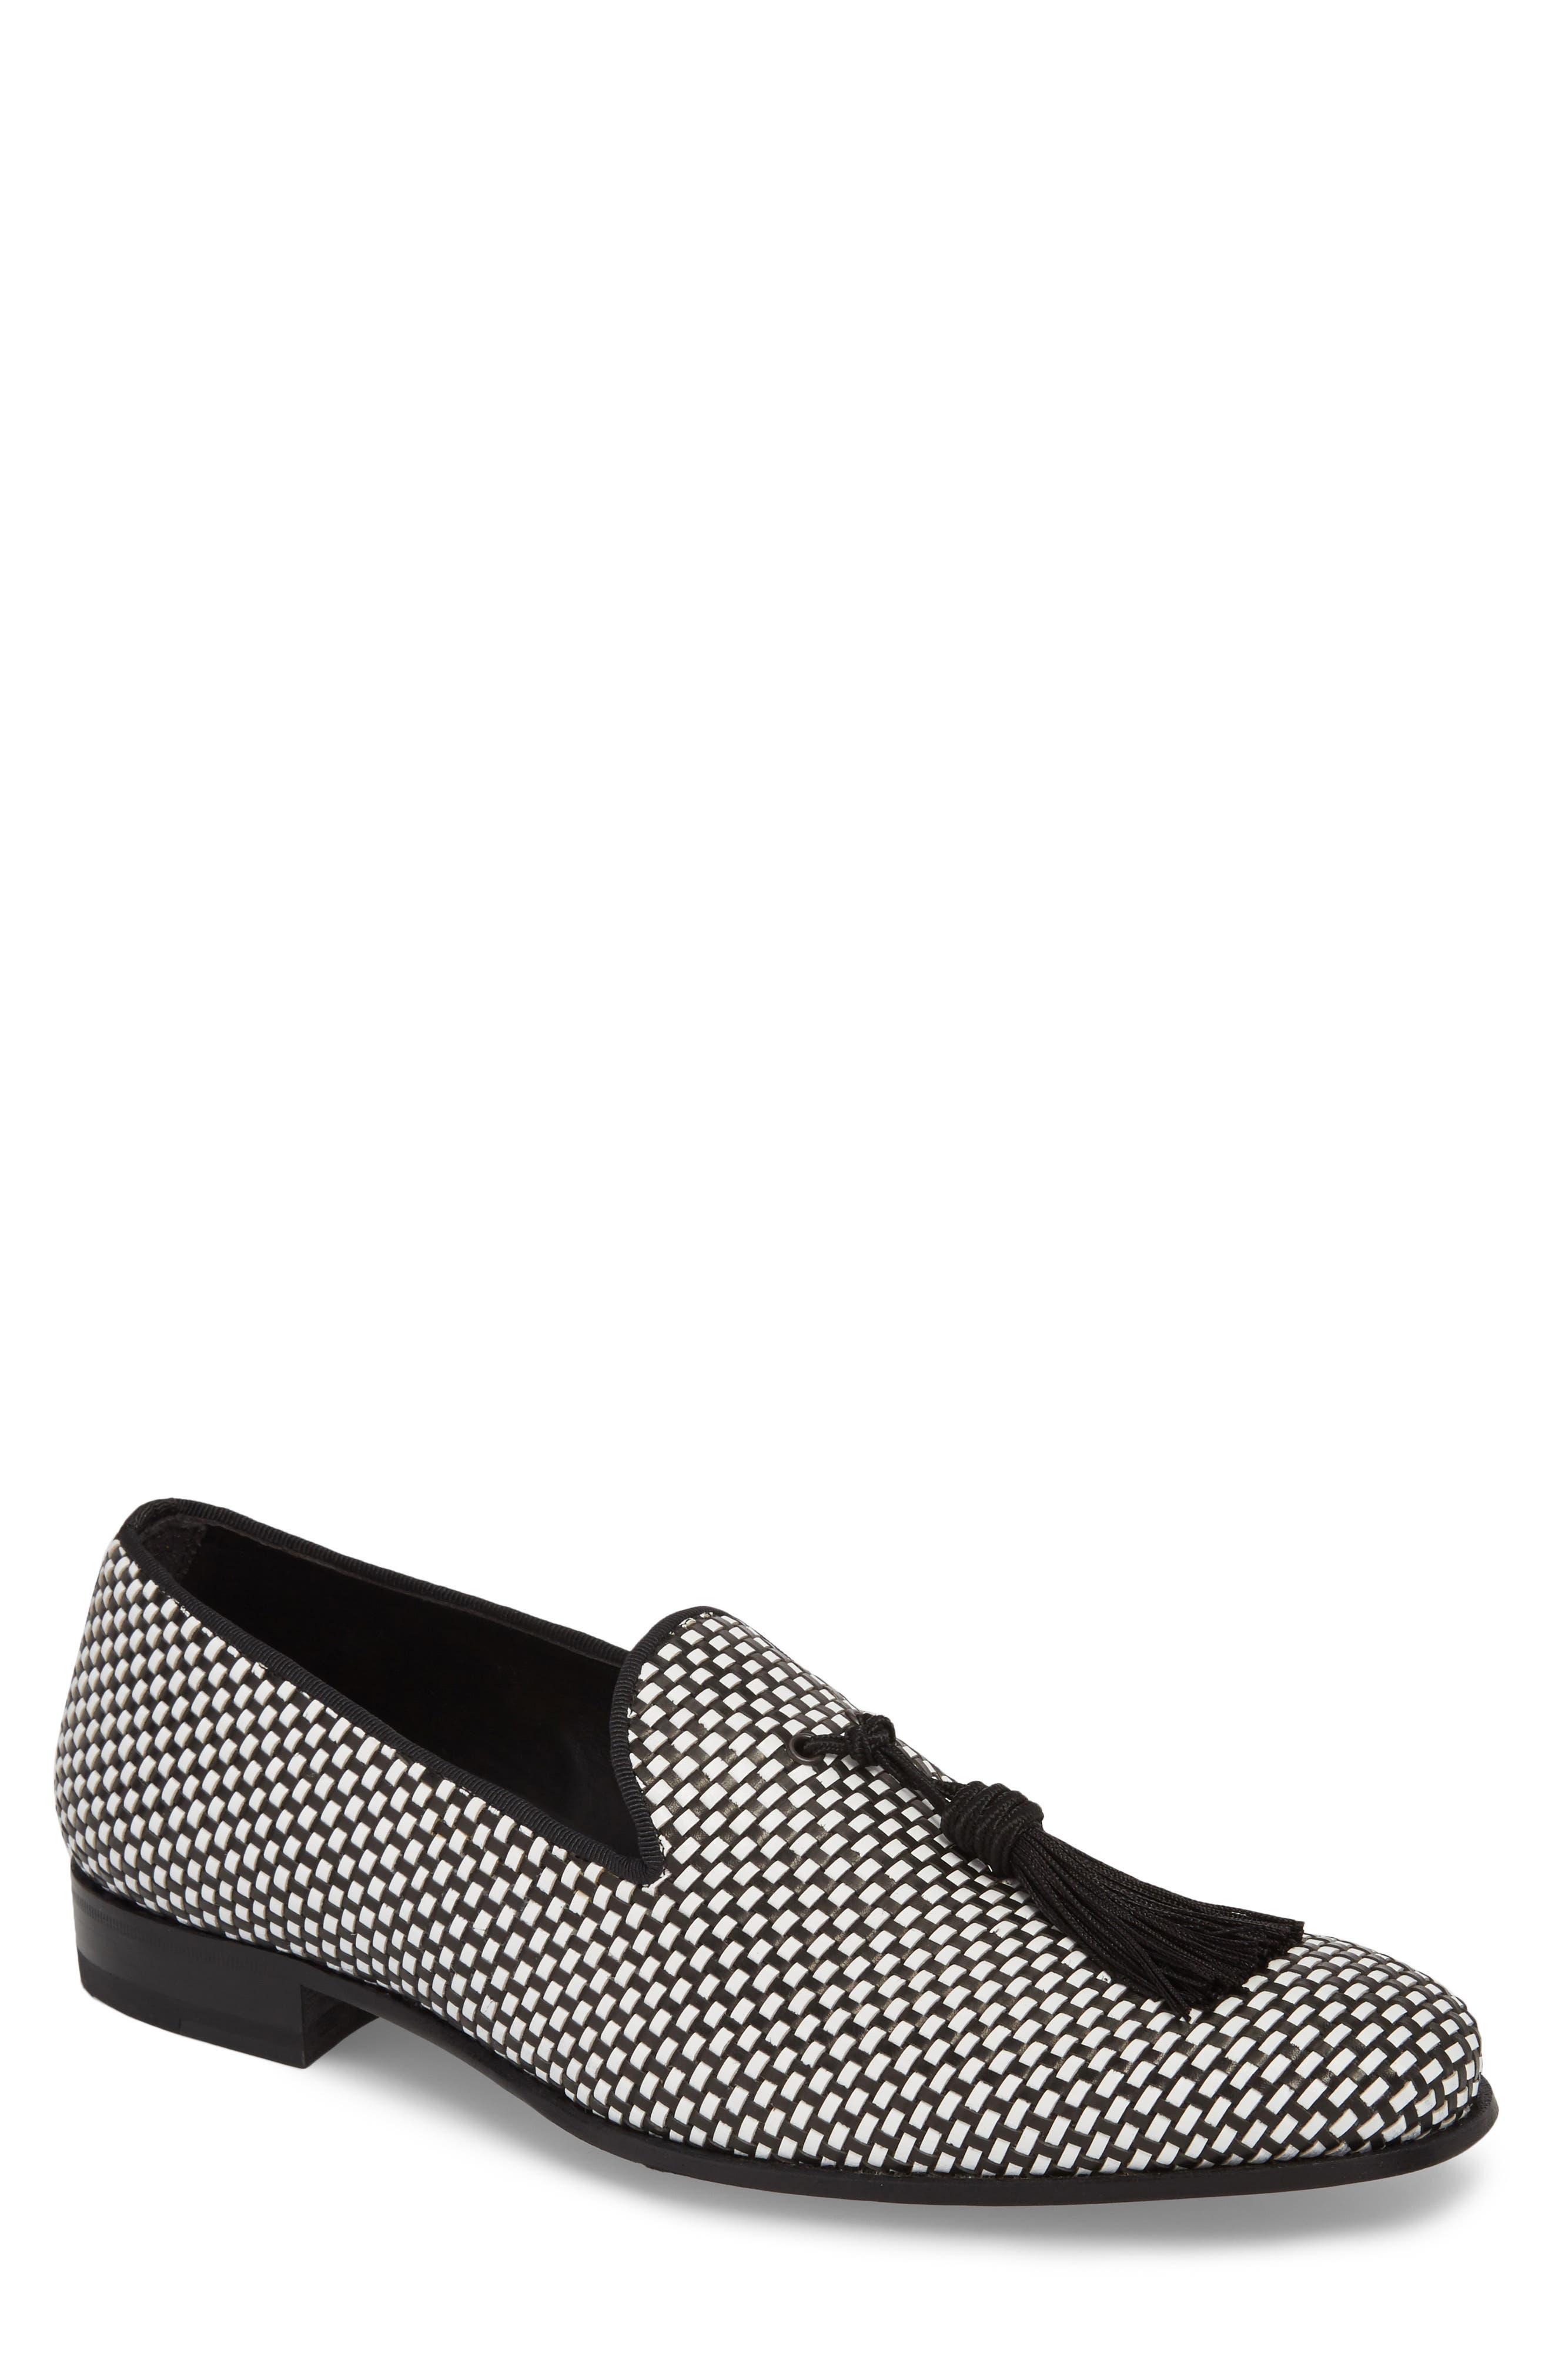 MEZLAN Egeo Tassel Loafer in Black/ White Leather